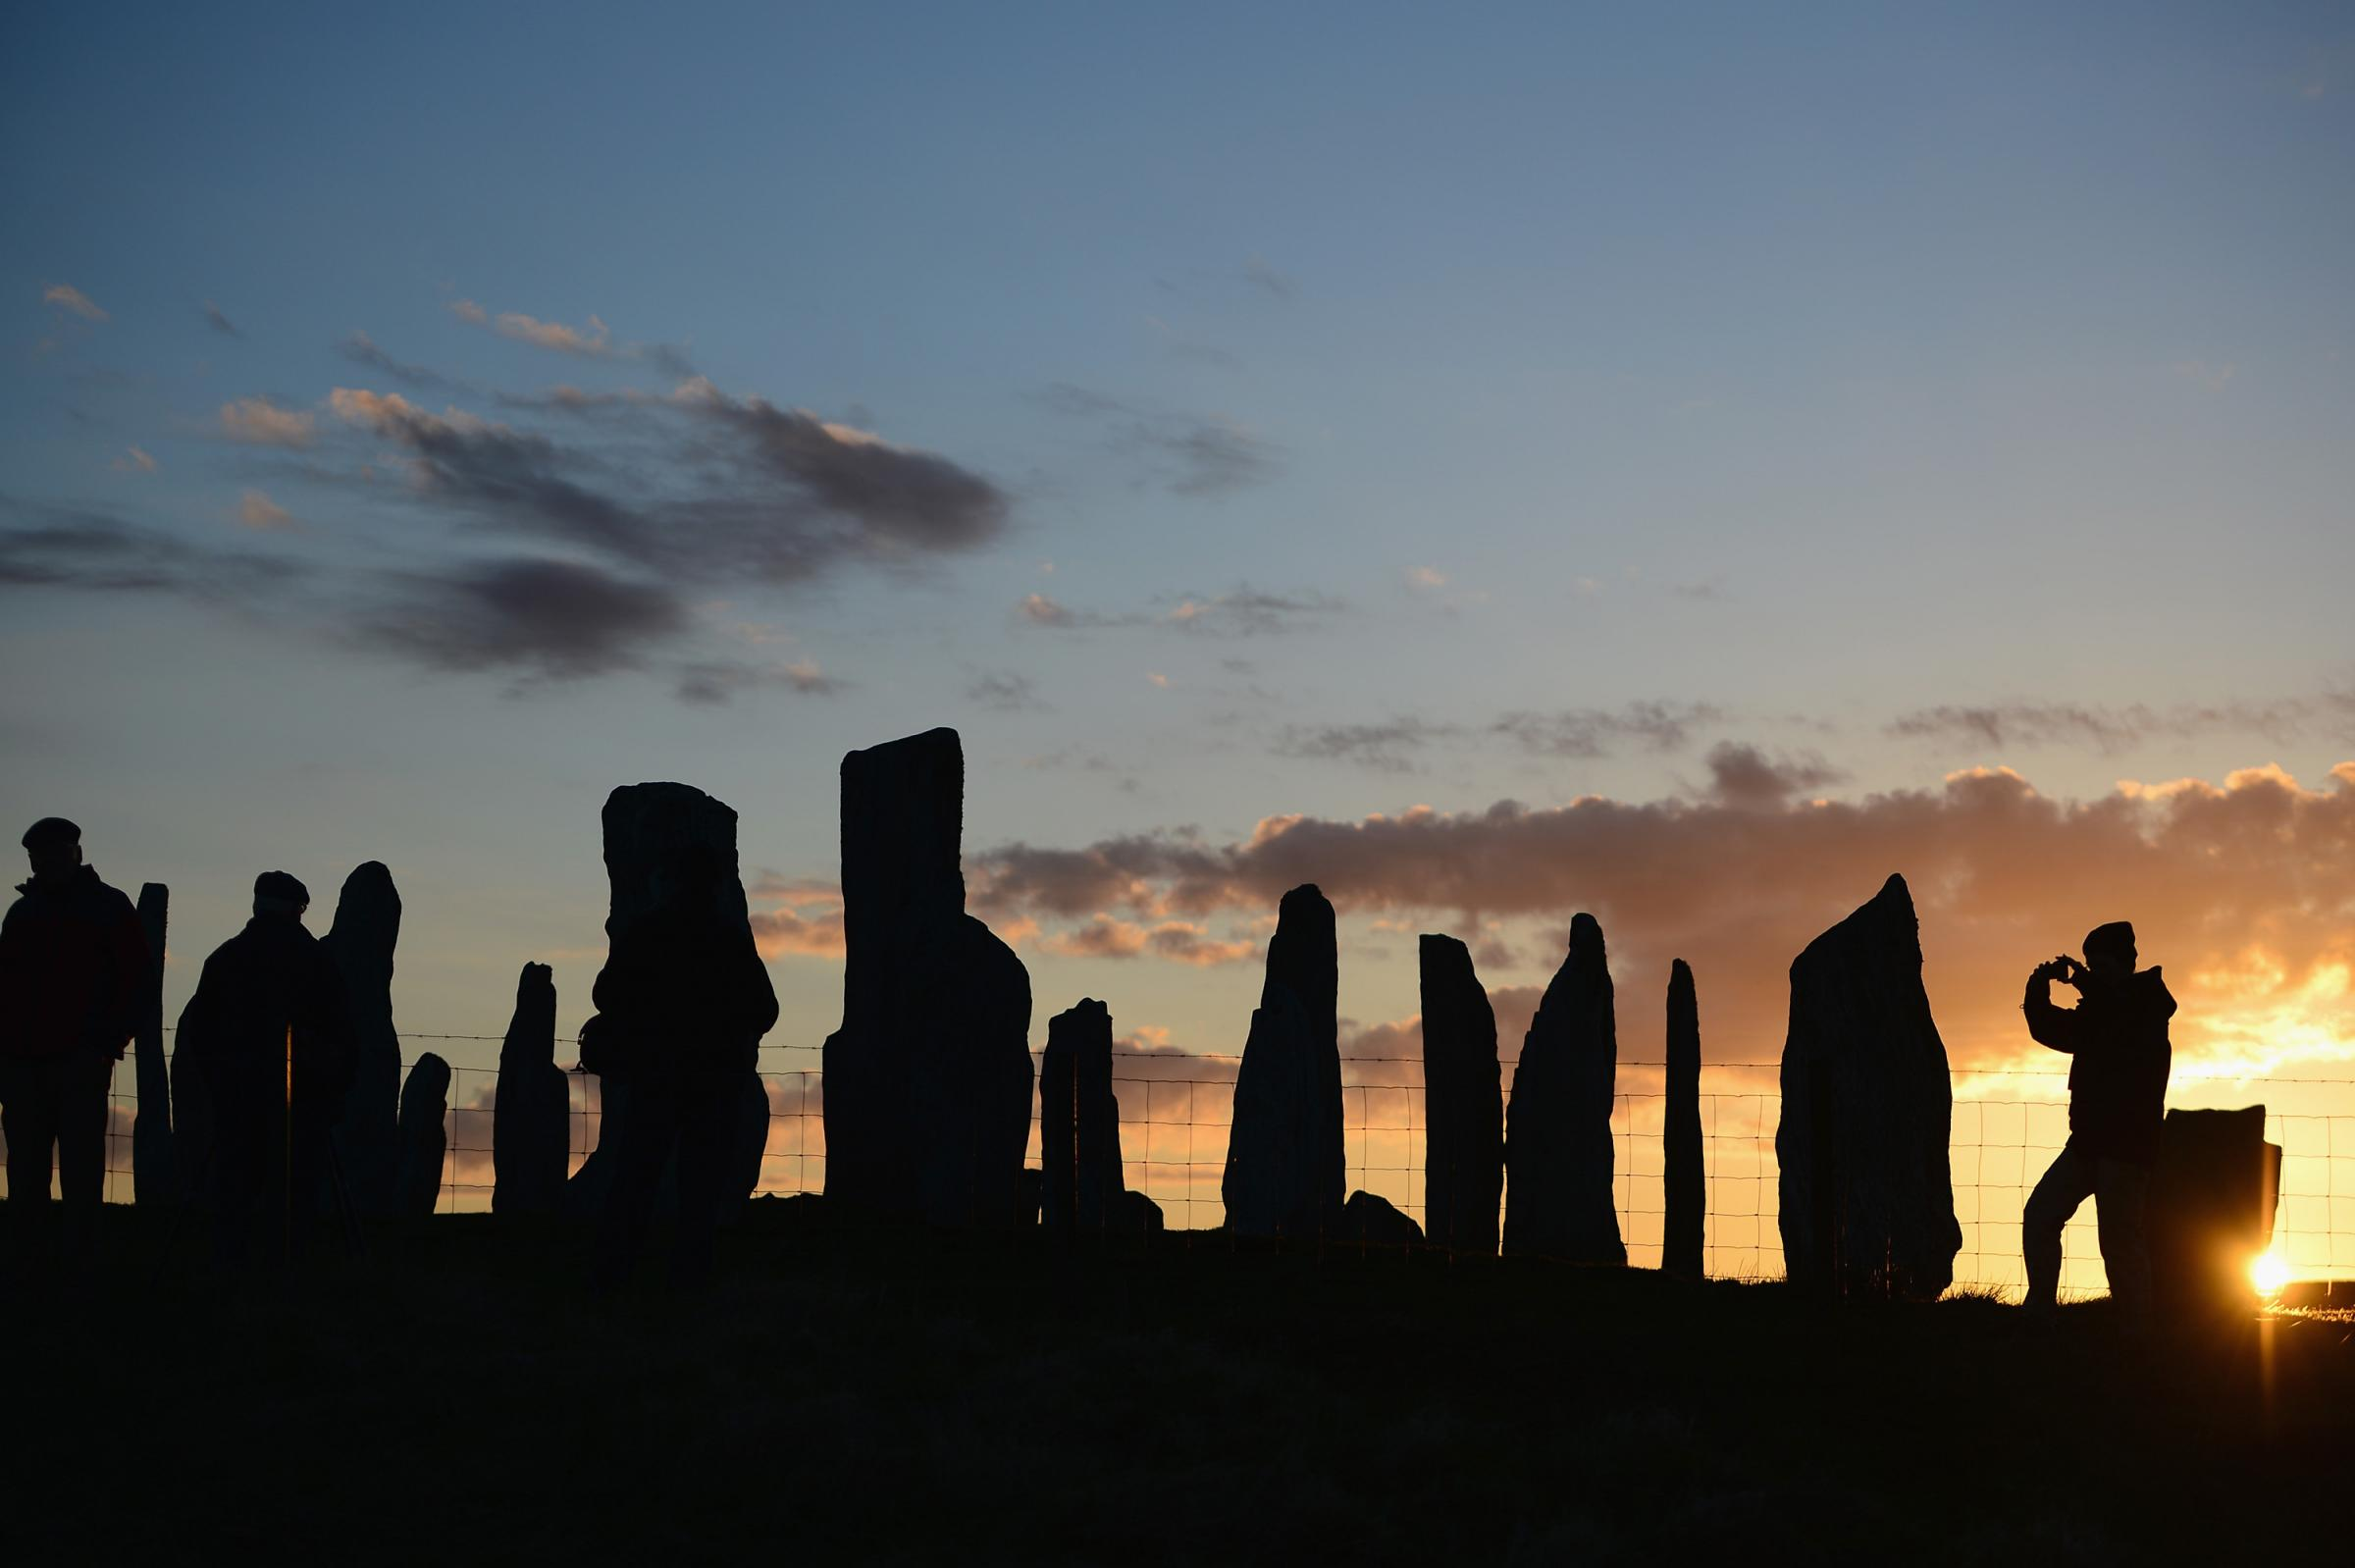 The Callanish Stones are a major tourism draw for the Outer Hebrides.